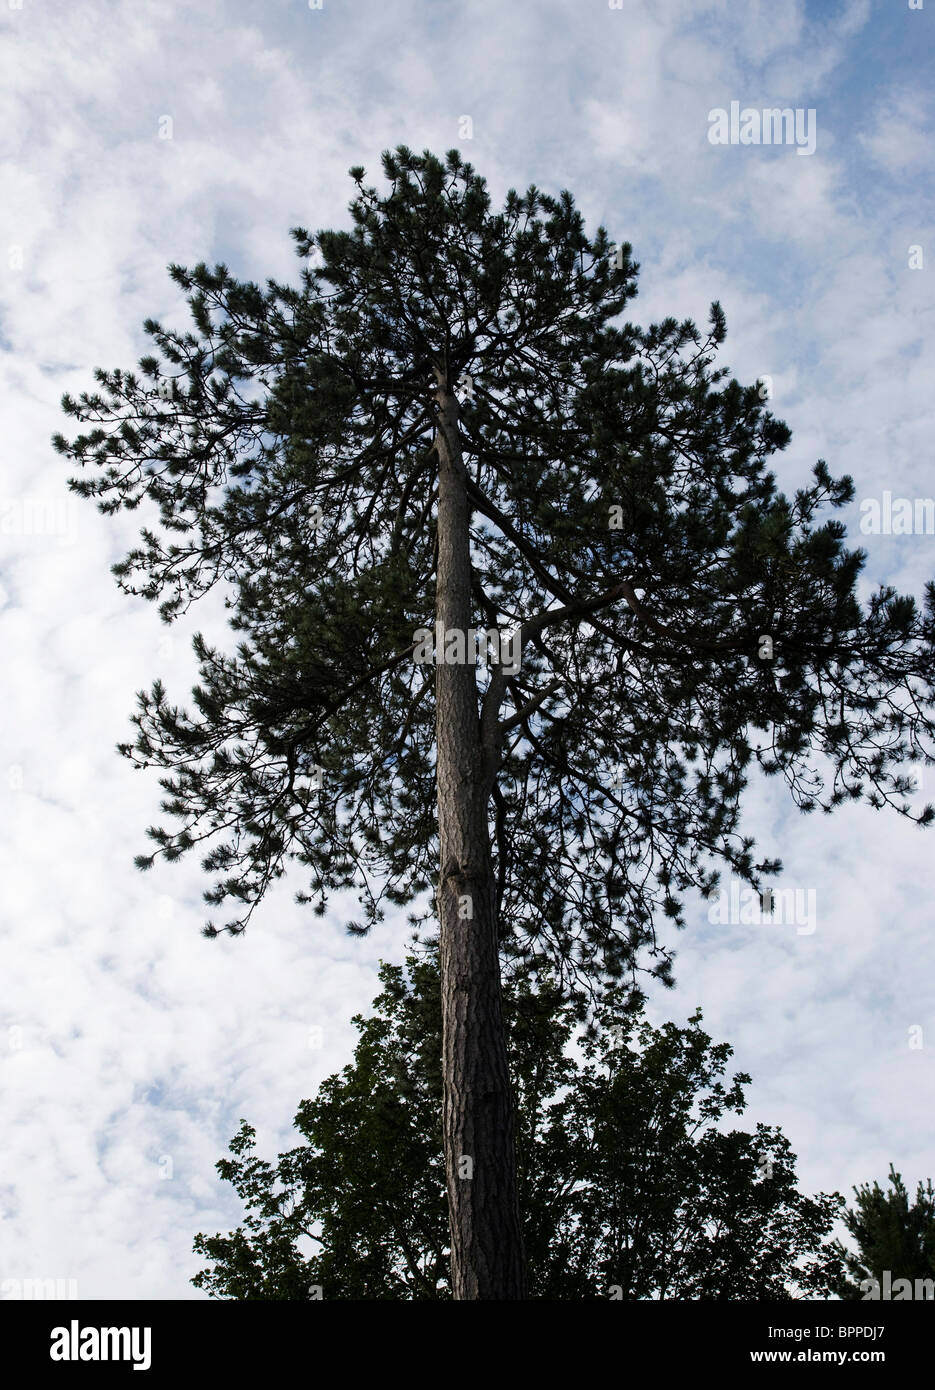 Tall Conifers in a Wood - Stock Image